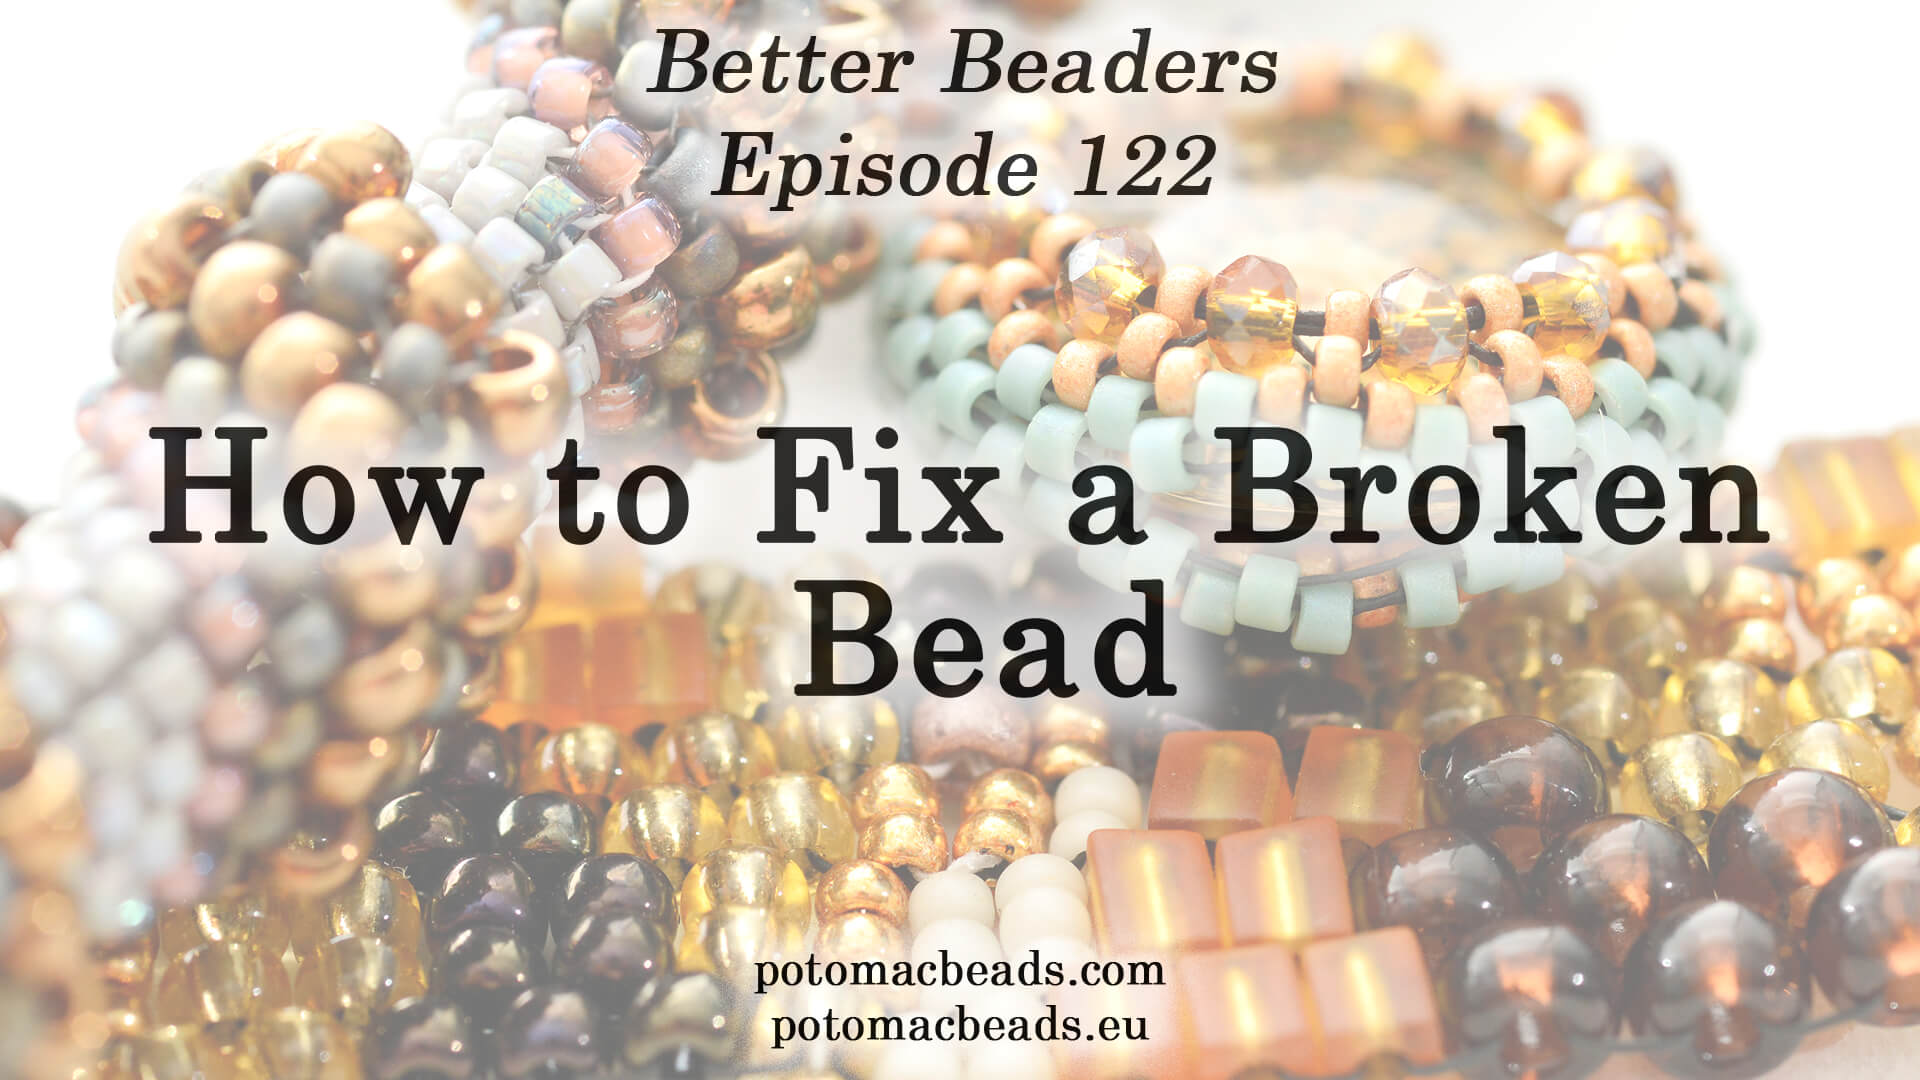 How to Bead / Better Beader Episodes / Better Beader Episode 122 - How to Fix a Broken Bead